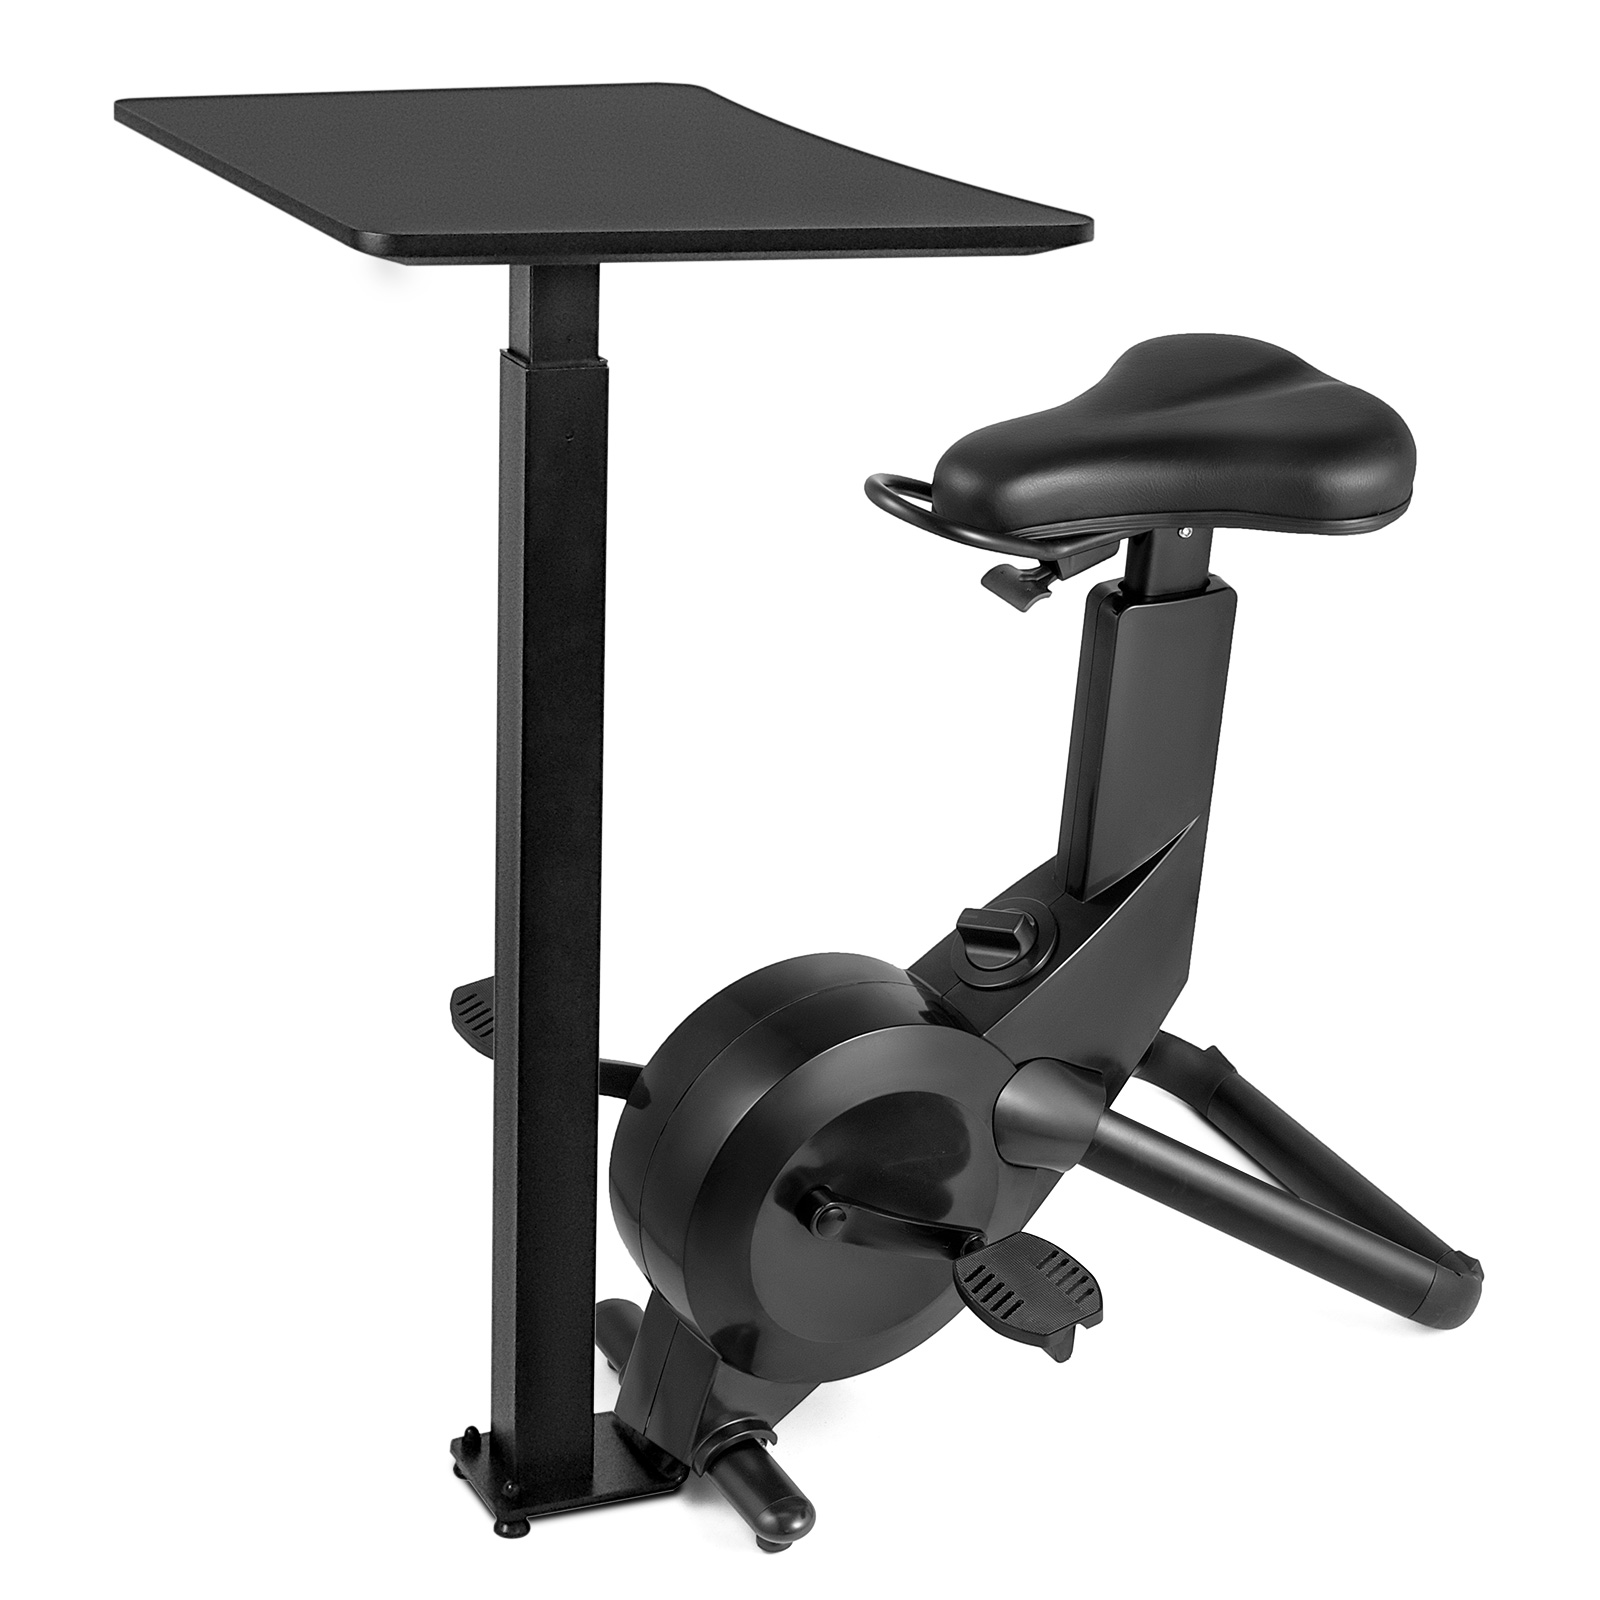 Multi-style-Magnetic-Exercise-Bike-office-Bicycle-under-Desk-Fitness-Cardio miniature 130